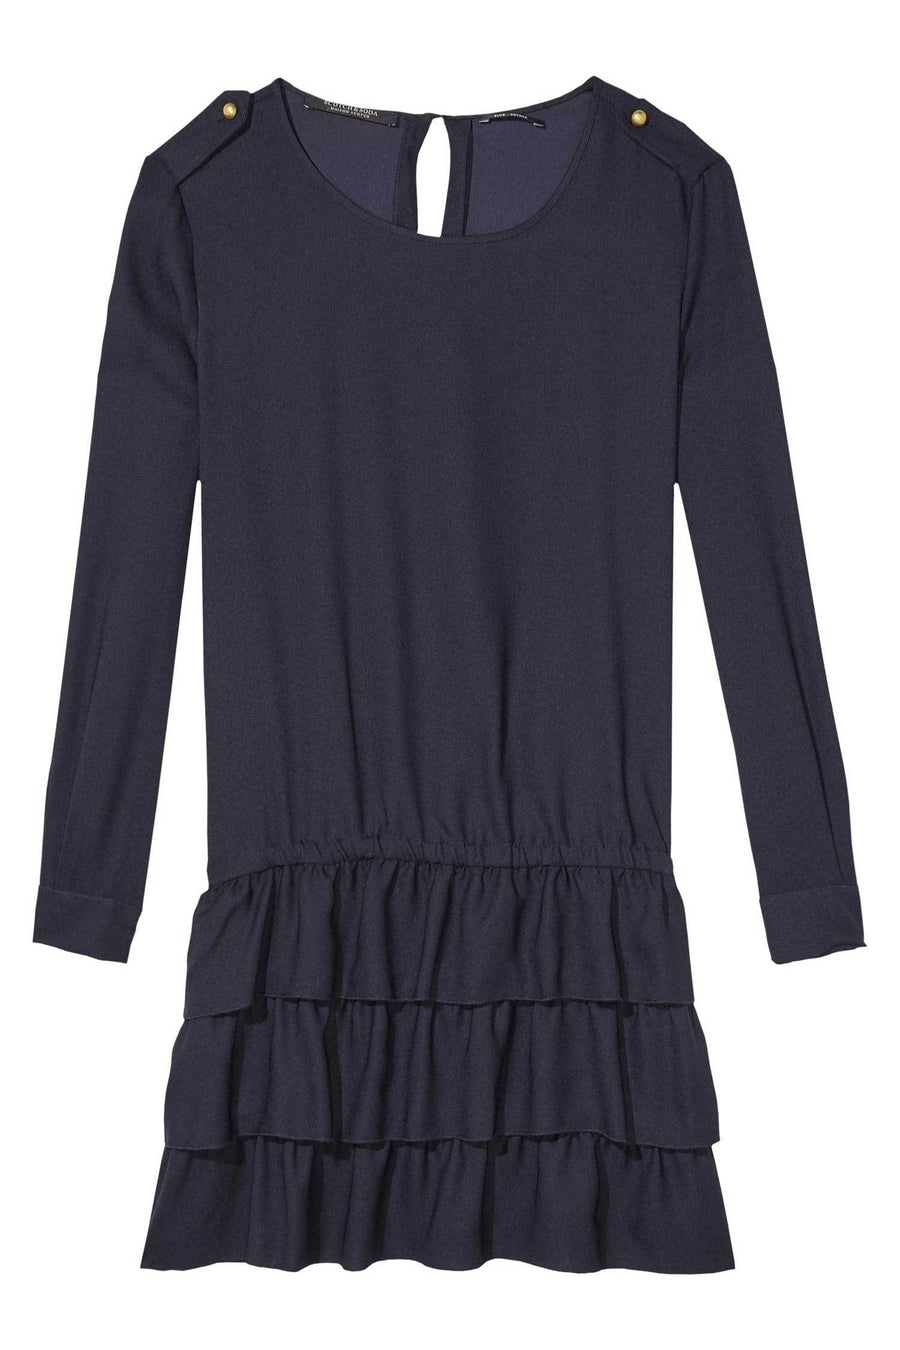 Shop Online Ruffled Drop Waist Dress by Maison Scotch  Frockaholics Dresses